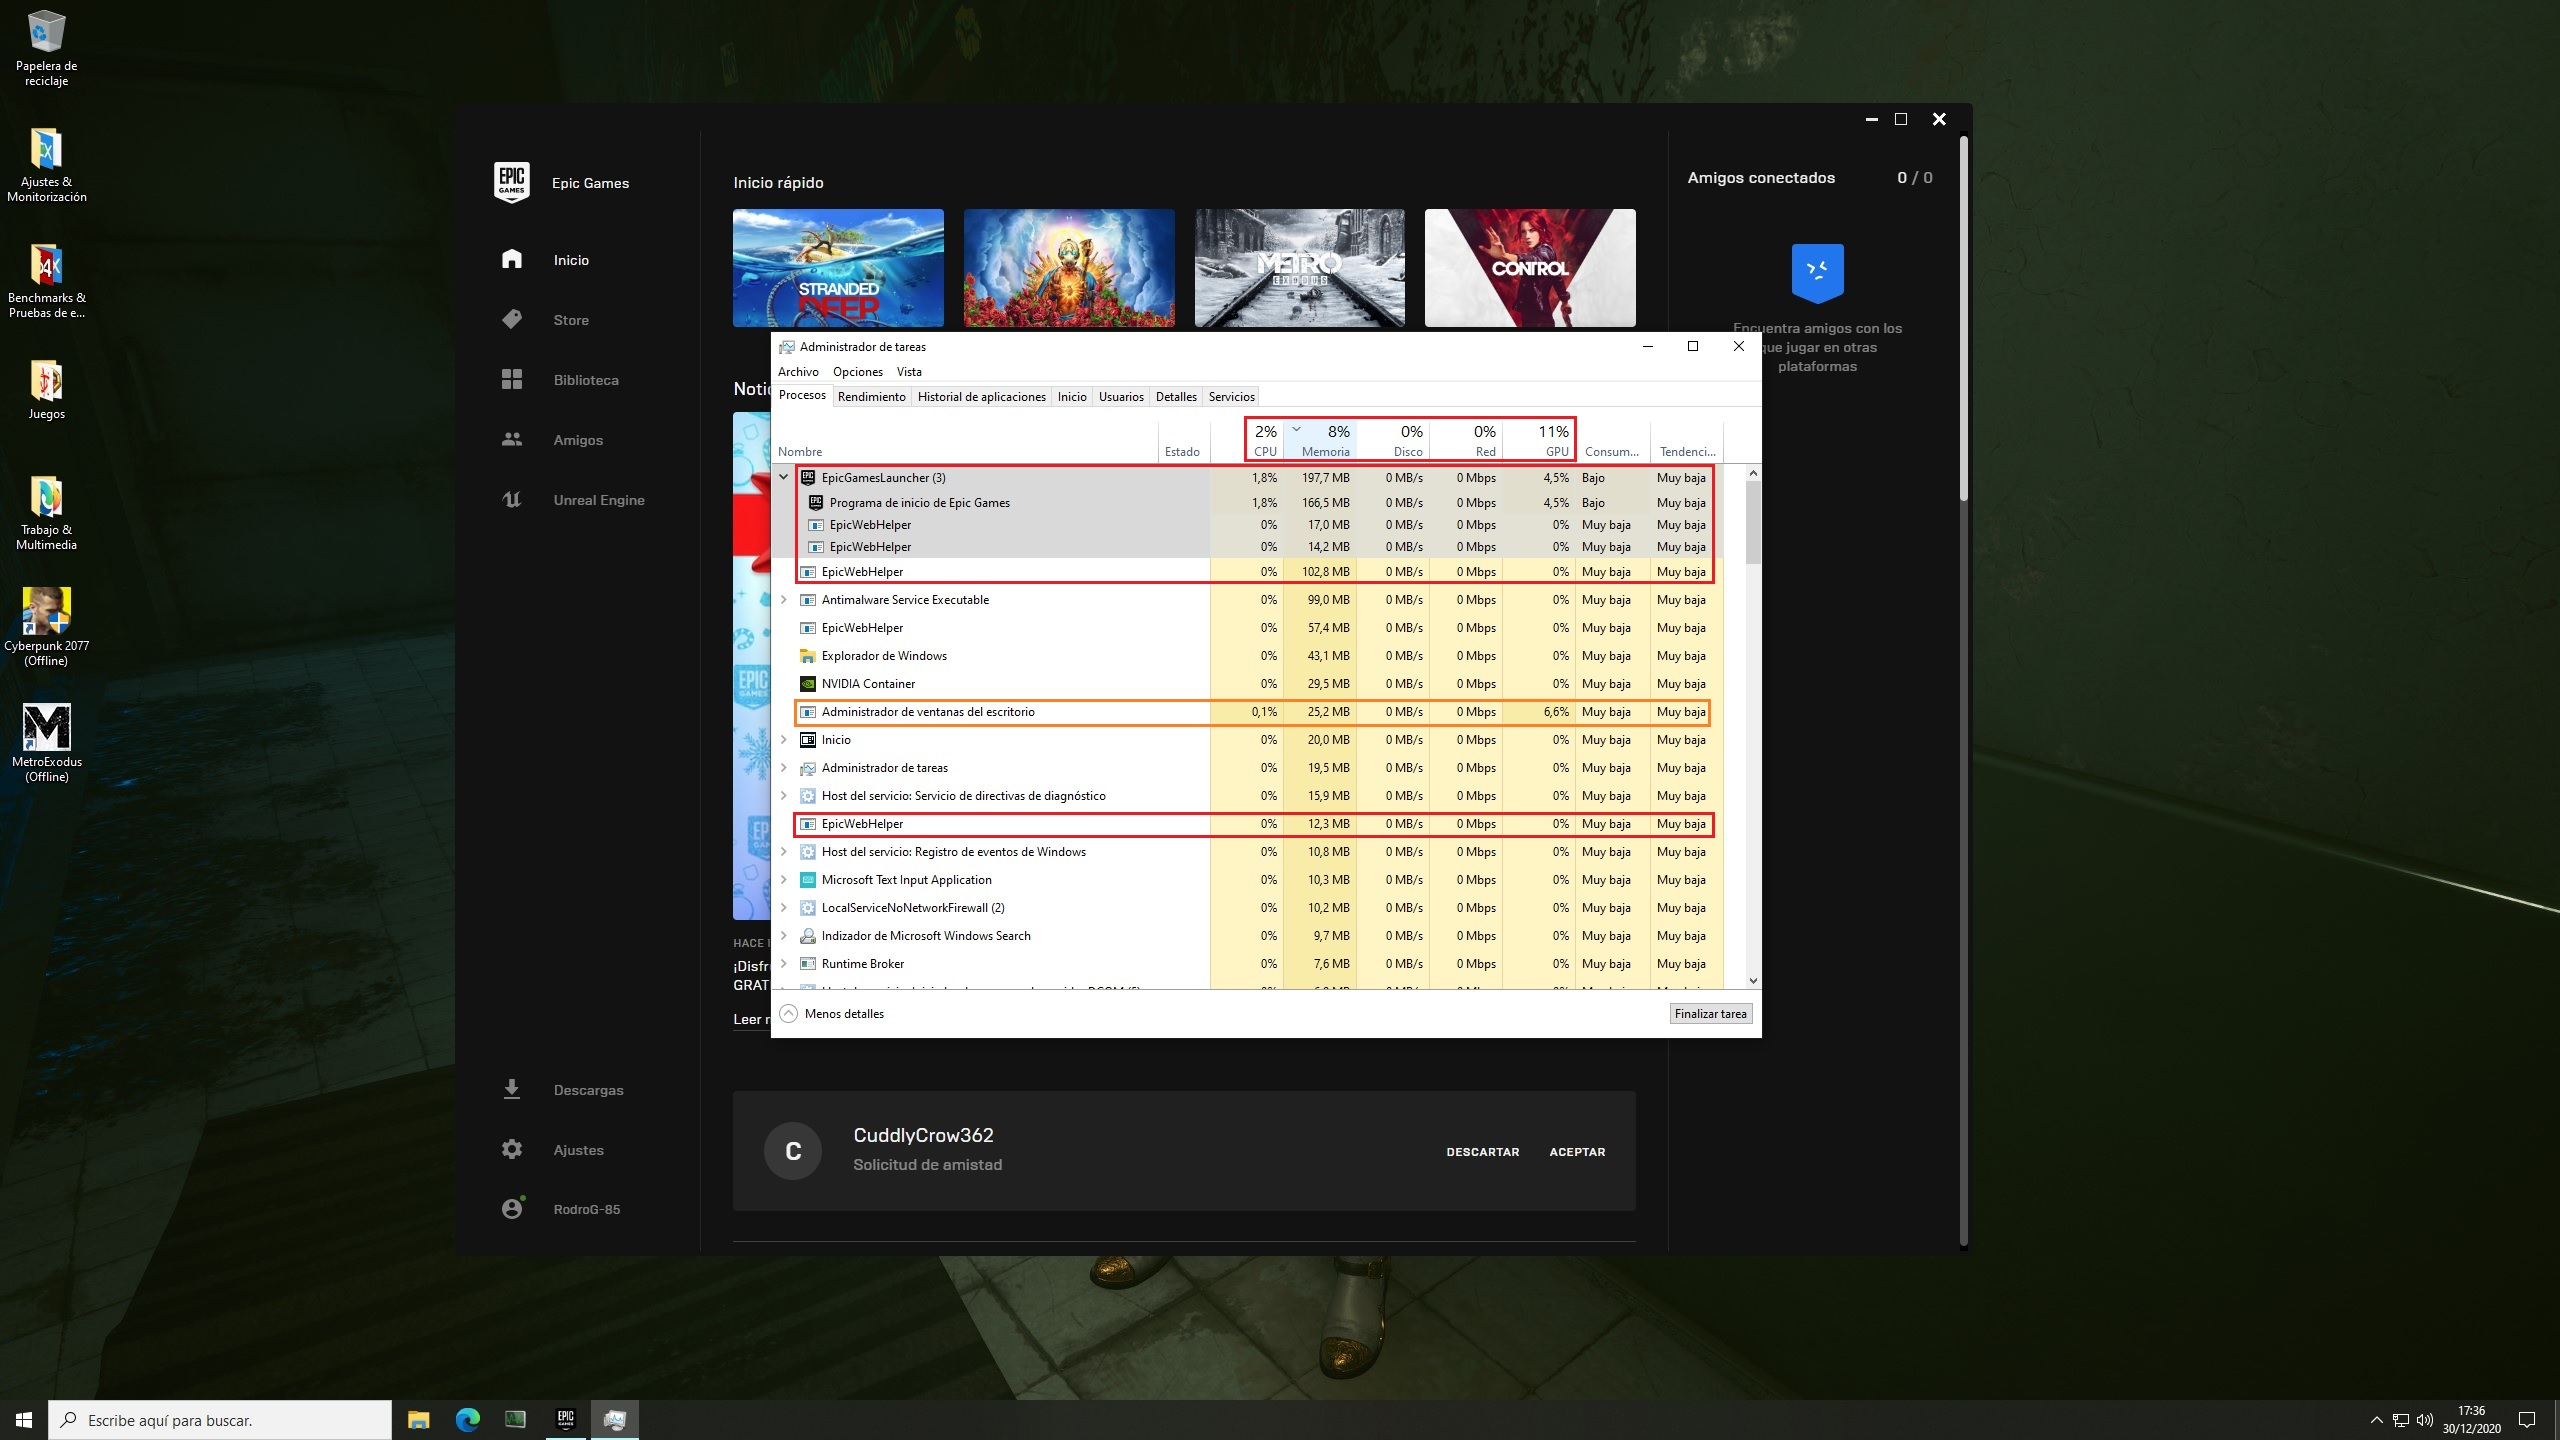 PC Game Launchers Efficiency – Epic Games Launcher on static load state – Windows 10 Task Manager Processes Tab